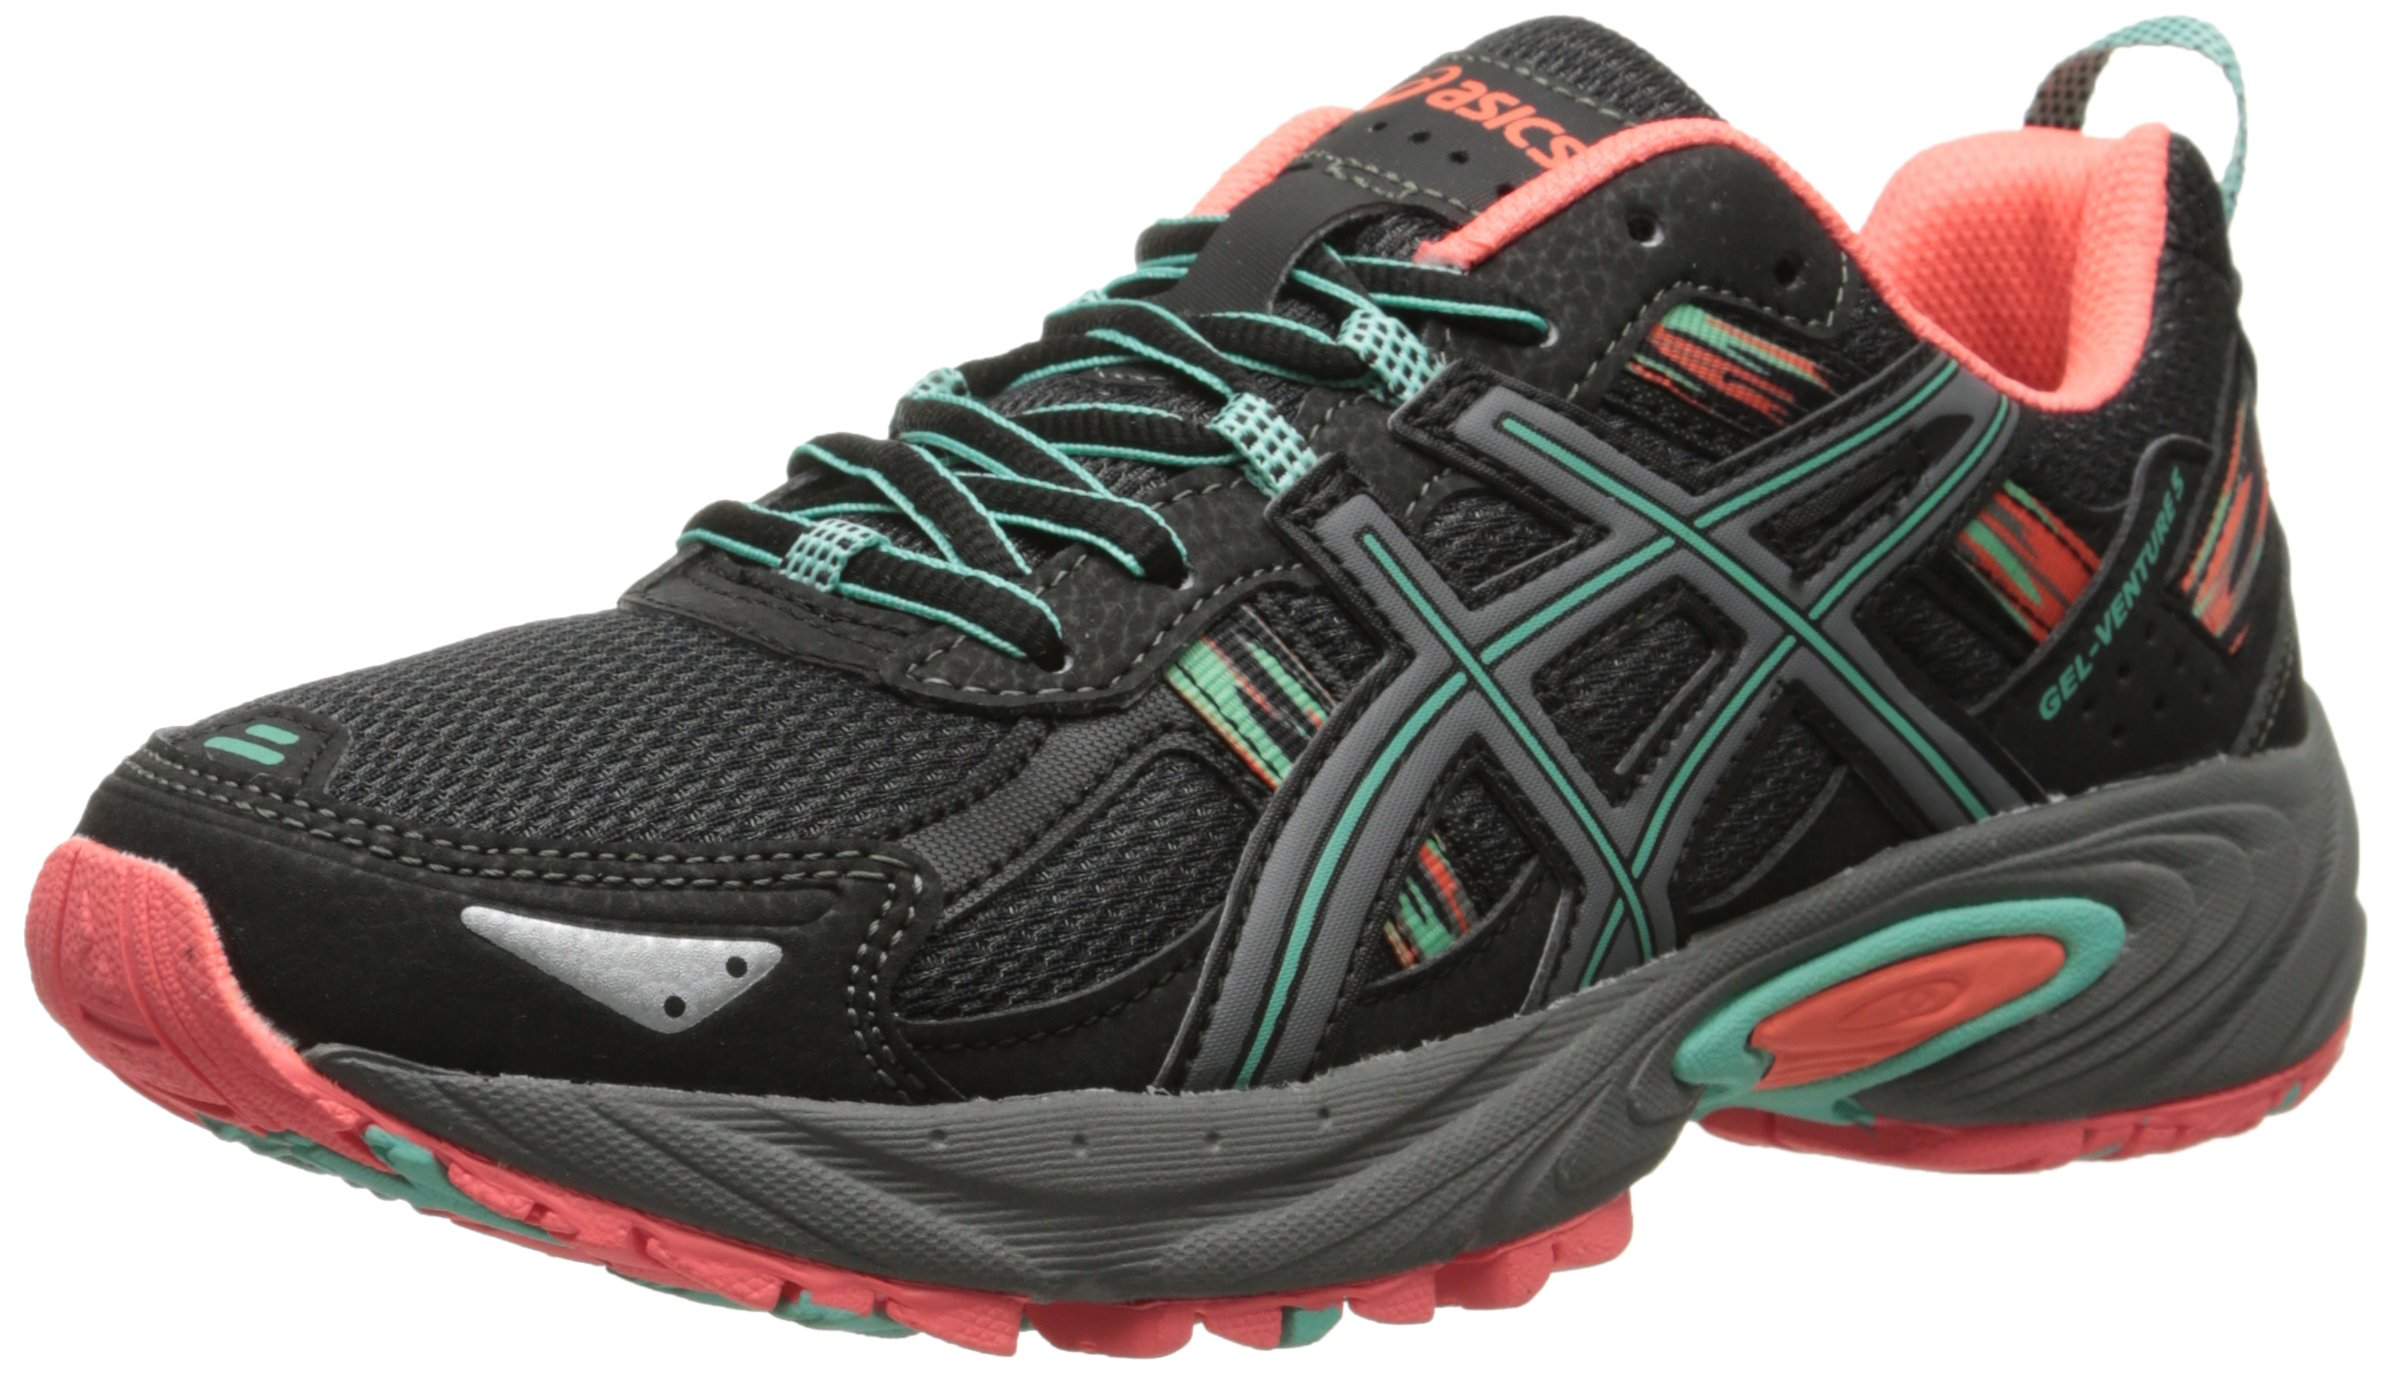 ASICS Women's Gel-venture 5 Running Shoe, Black/Aqua Mint/Flash Coral, 6.5 M US